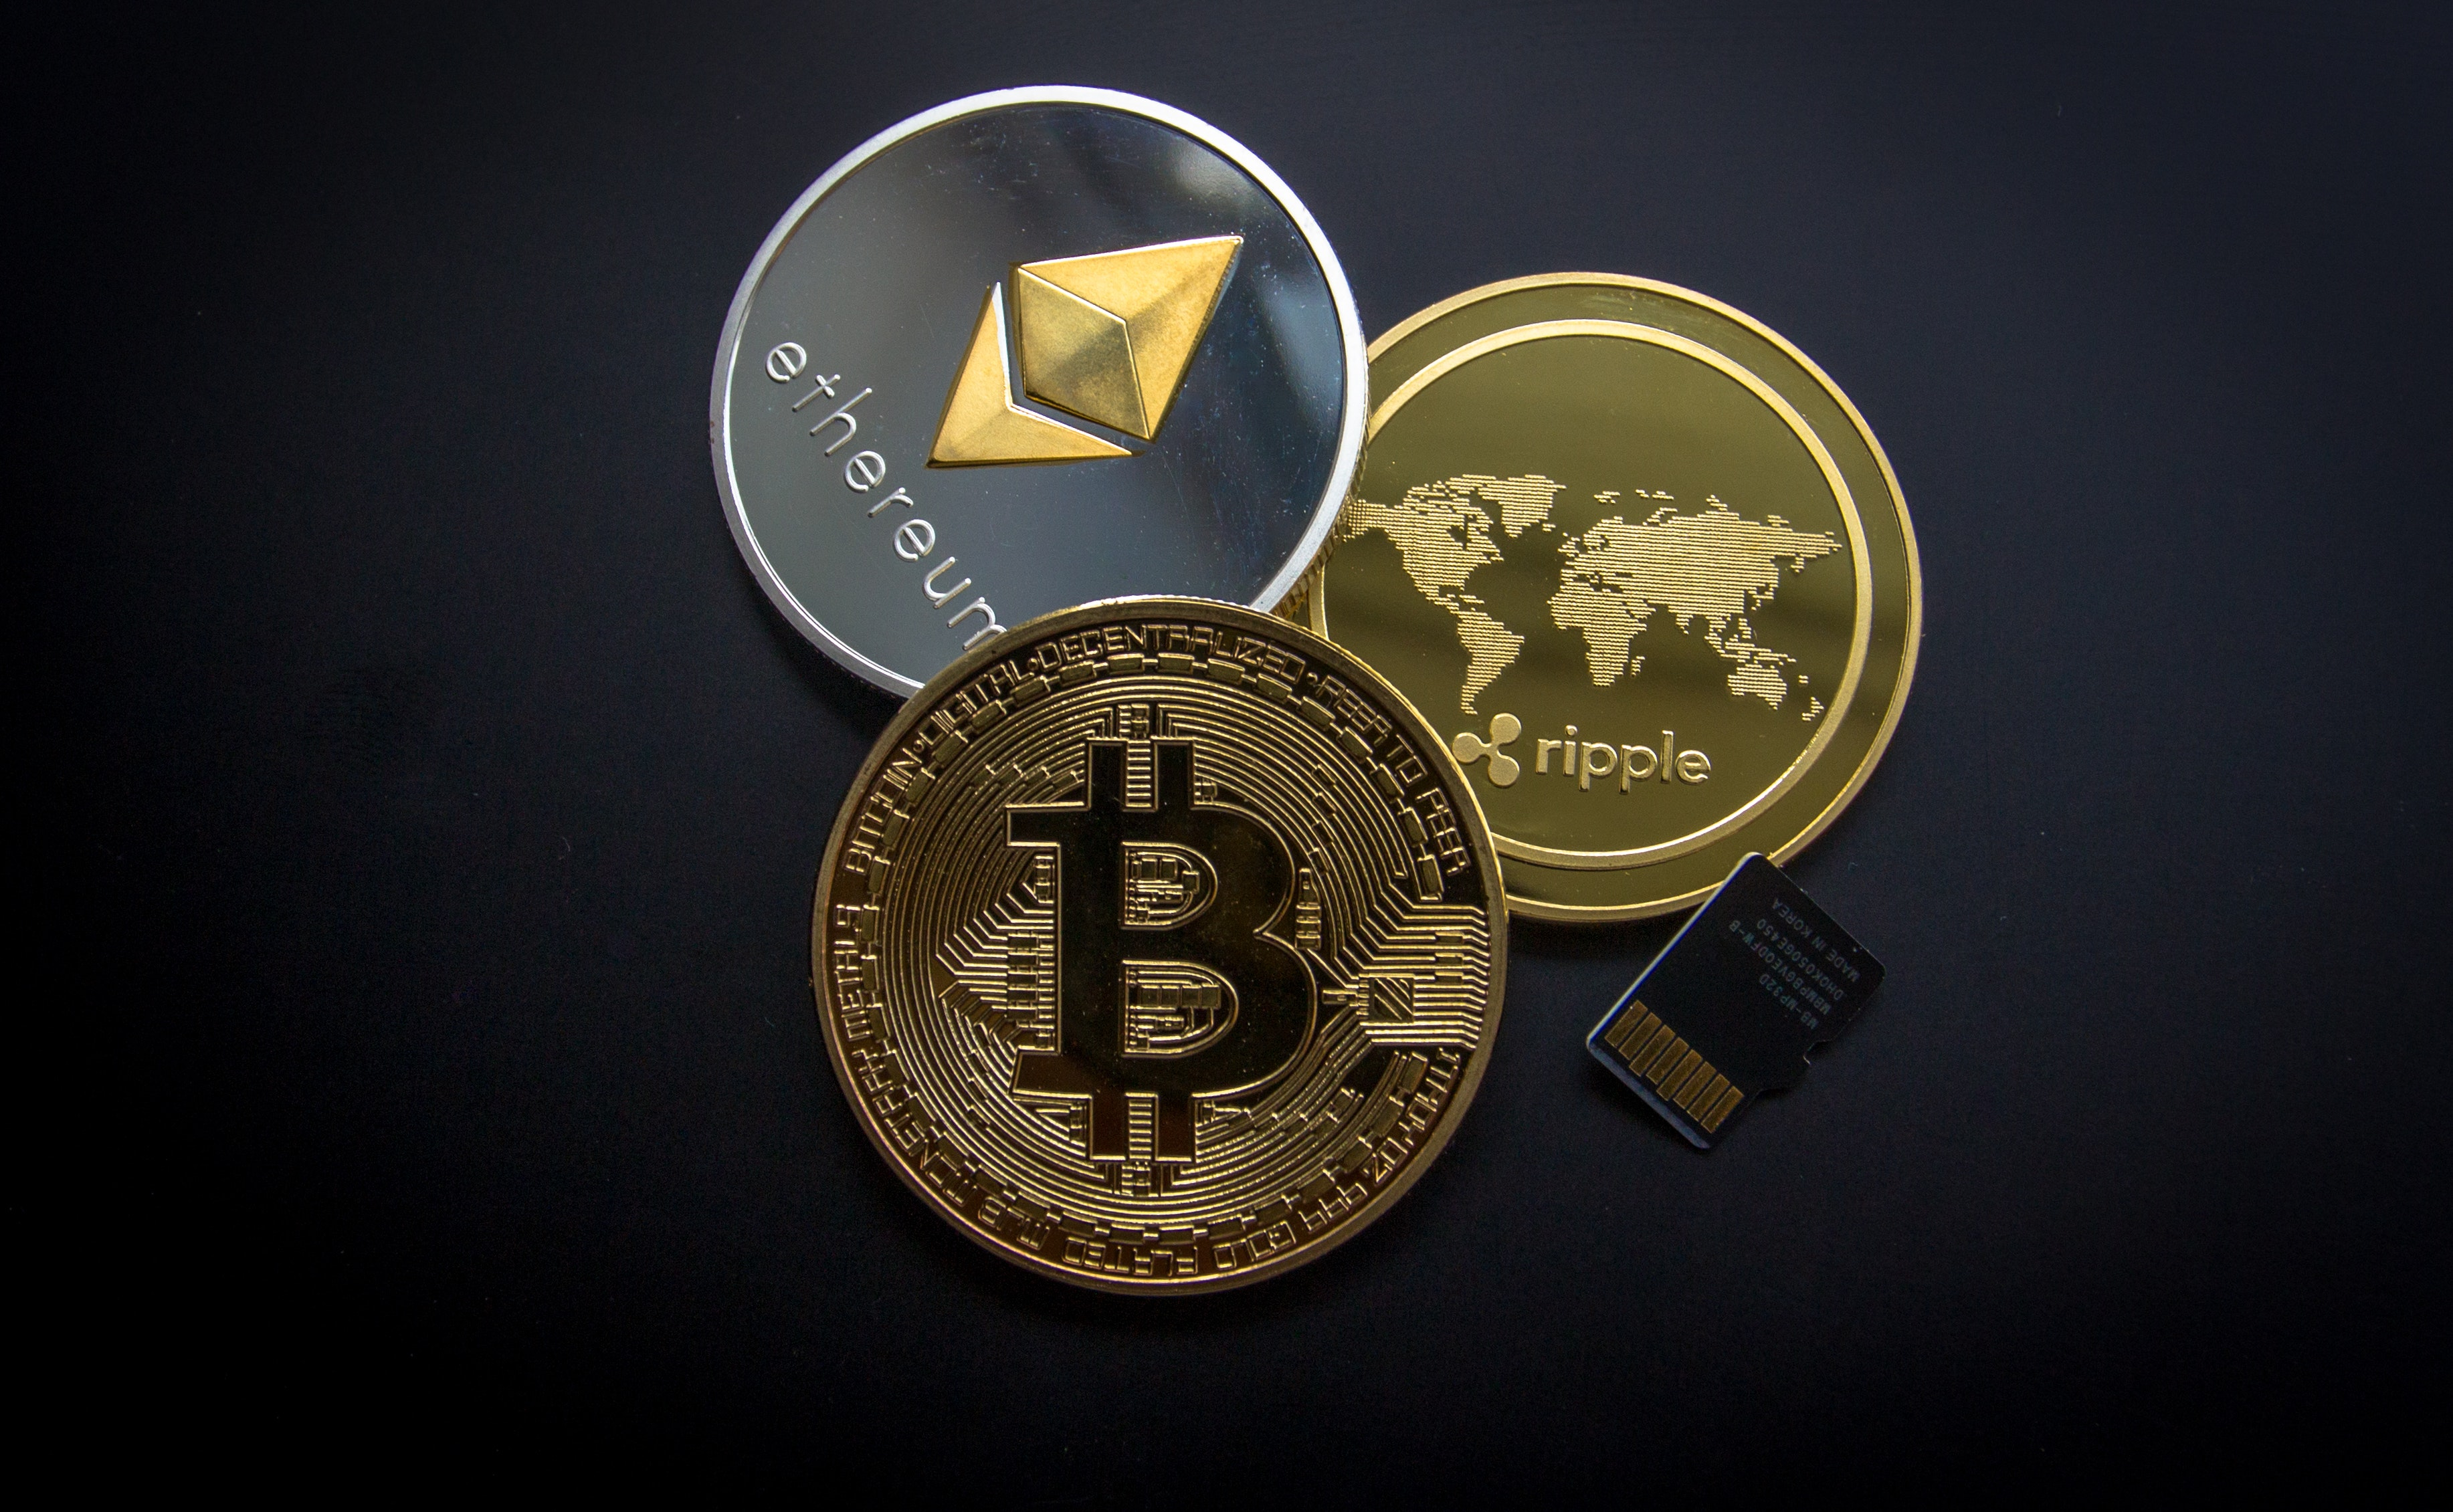 cryptocurrency Photo by Worldspectrum from Pexels